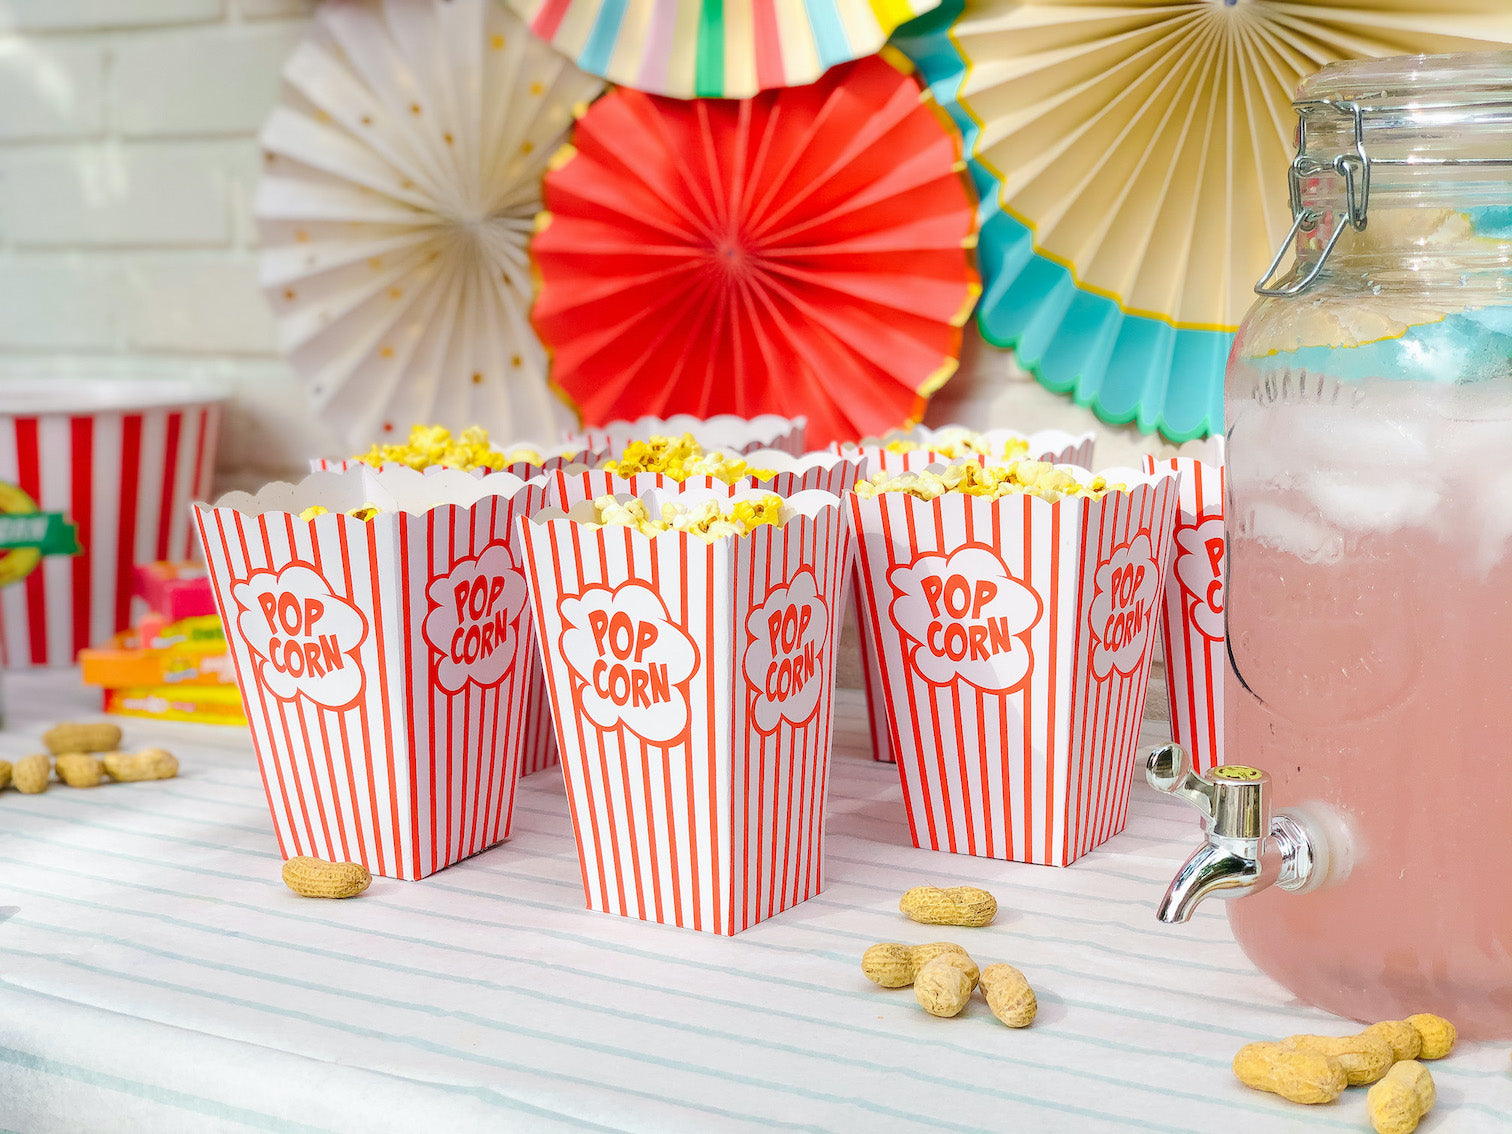 circus birthday party ideas - food ideas